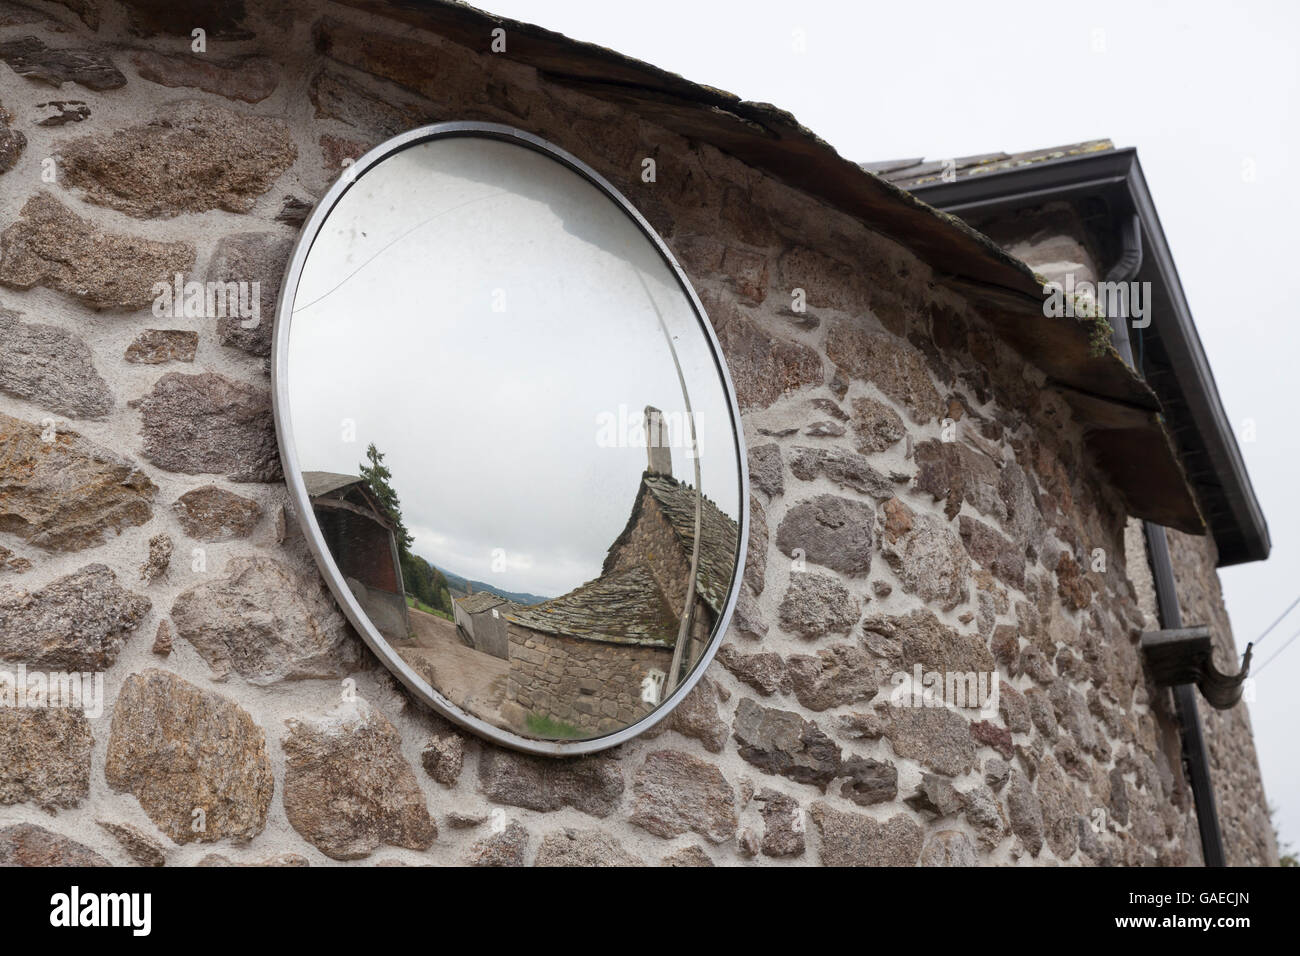 O Hospital, Spain: Convex traffic mirror at a narrow intersection in the village. - Stock Image